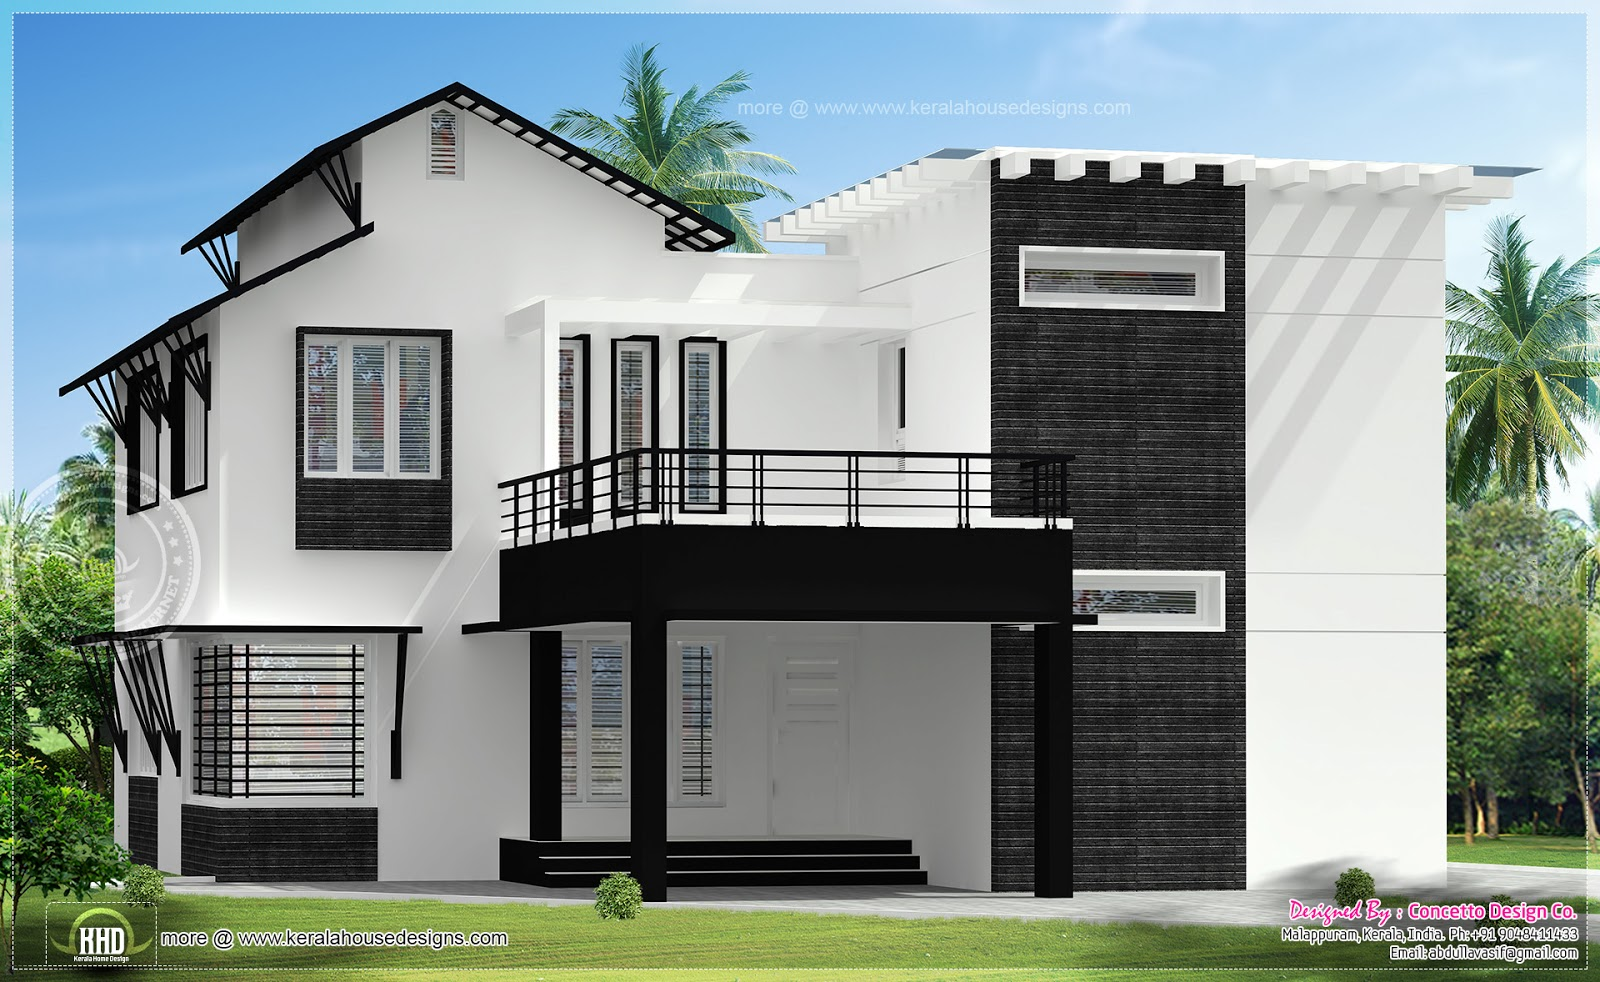 5 different house exteriors by concetto design kerala for Home floor design